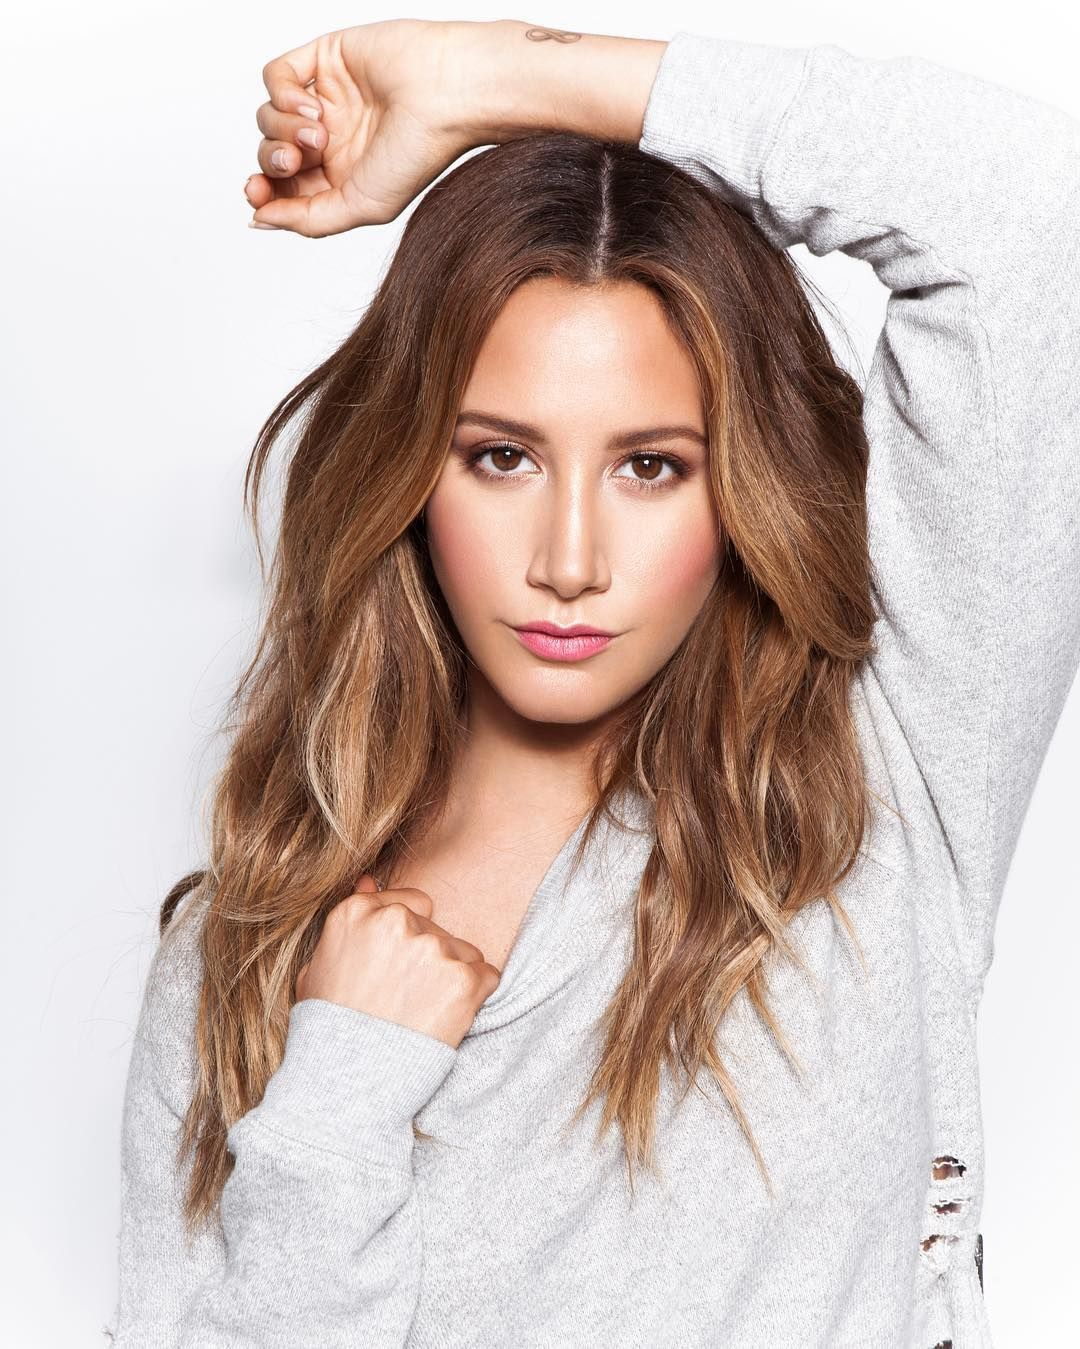 Pin by Celebrity Crushes 💦💦💦 on Ashley Tisdale ️ in 2019